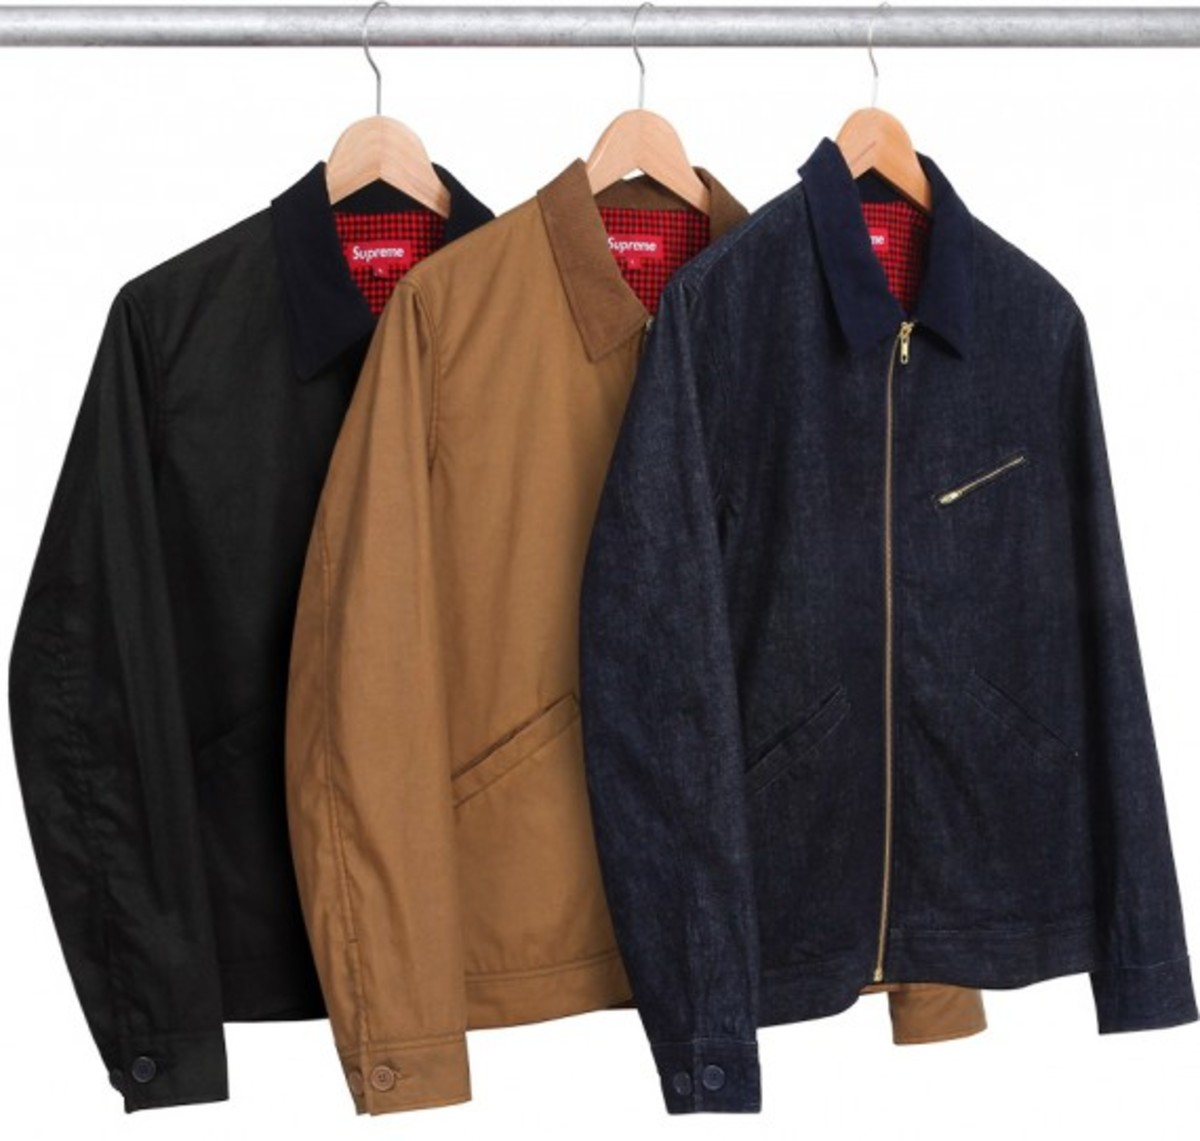 4-workers_jacket-zoom_1345455012